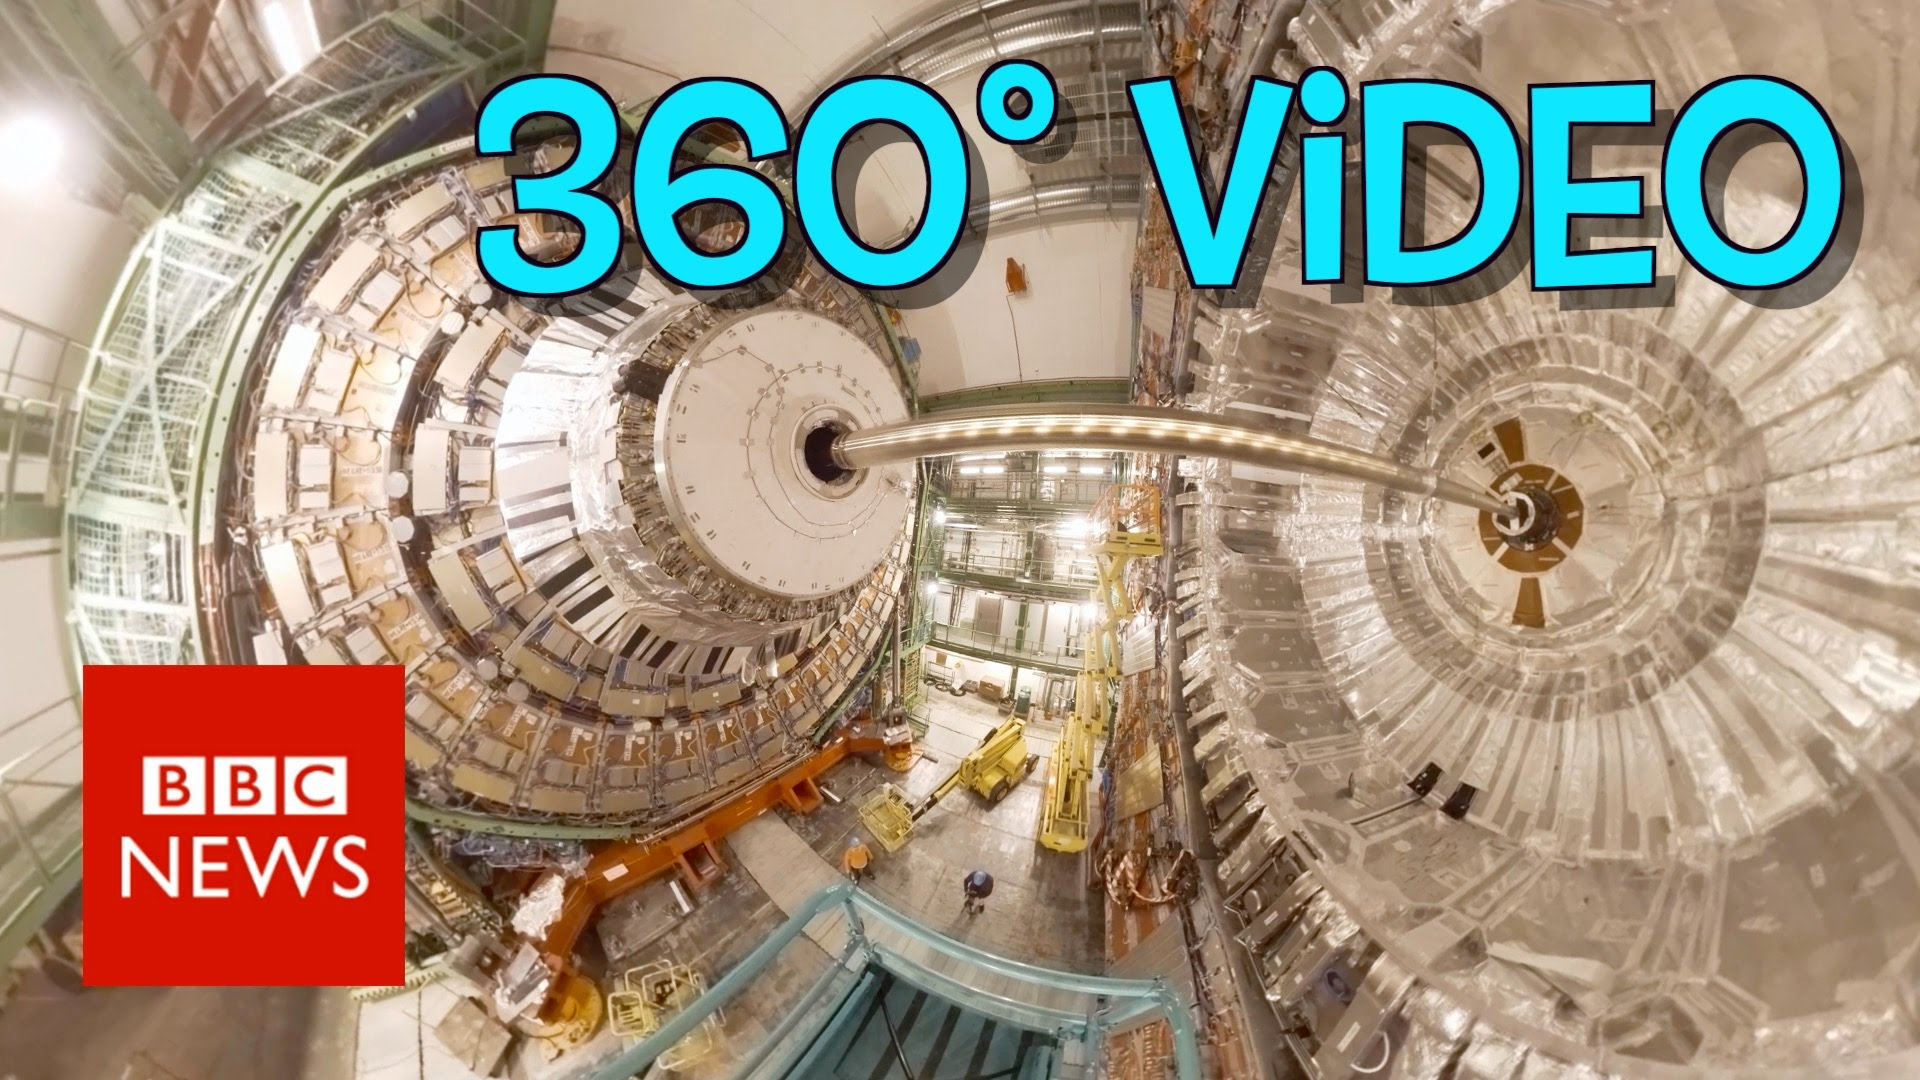 Ein 360°-Video aus dem Large Hadron Collider